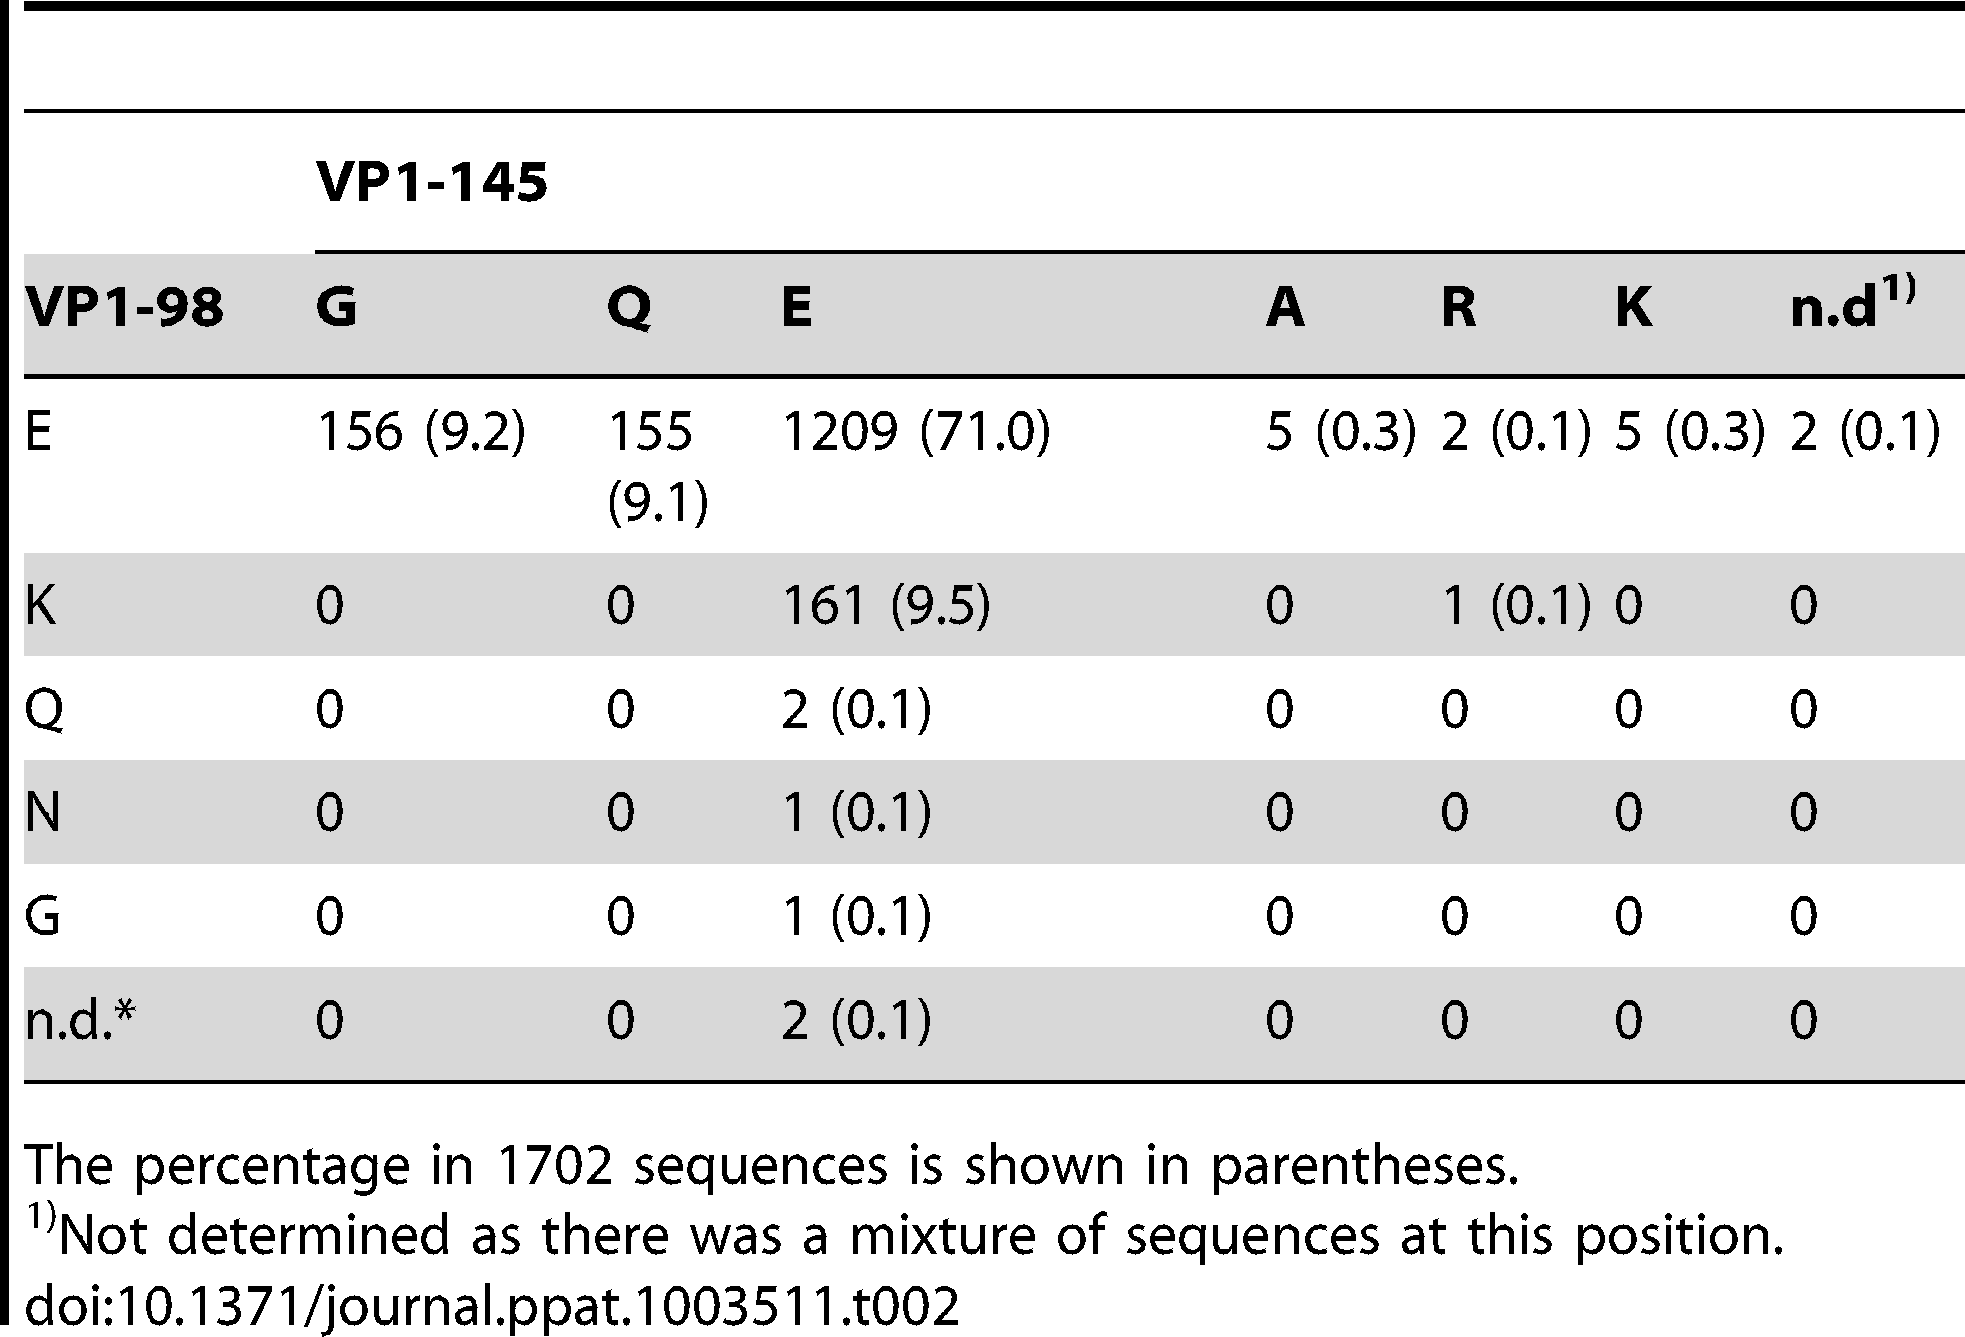 Amino acid combinations at VP1-98 and VP1-145 in 1702 EV71 sequences found in GenBank.